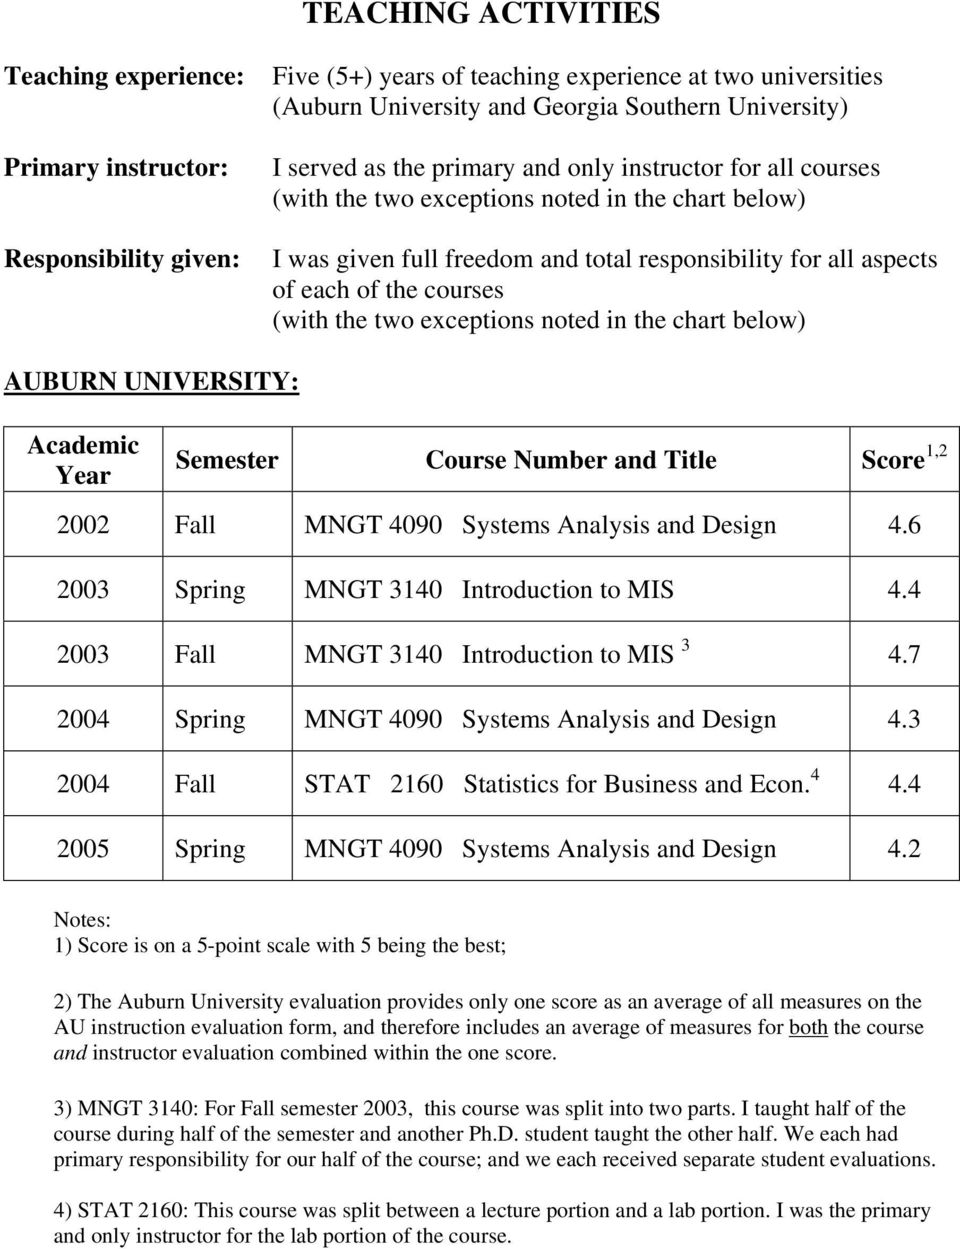 (with the two exceptions noted in the chart below) AUBURN UNIVERSITY: Academic Year Semester Course Number and Title Score 1,2 2002 Fall MNGT 4090 Systems Analysis and Design 4.